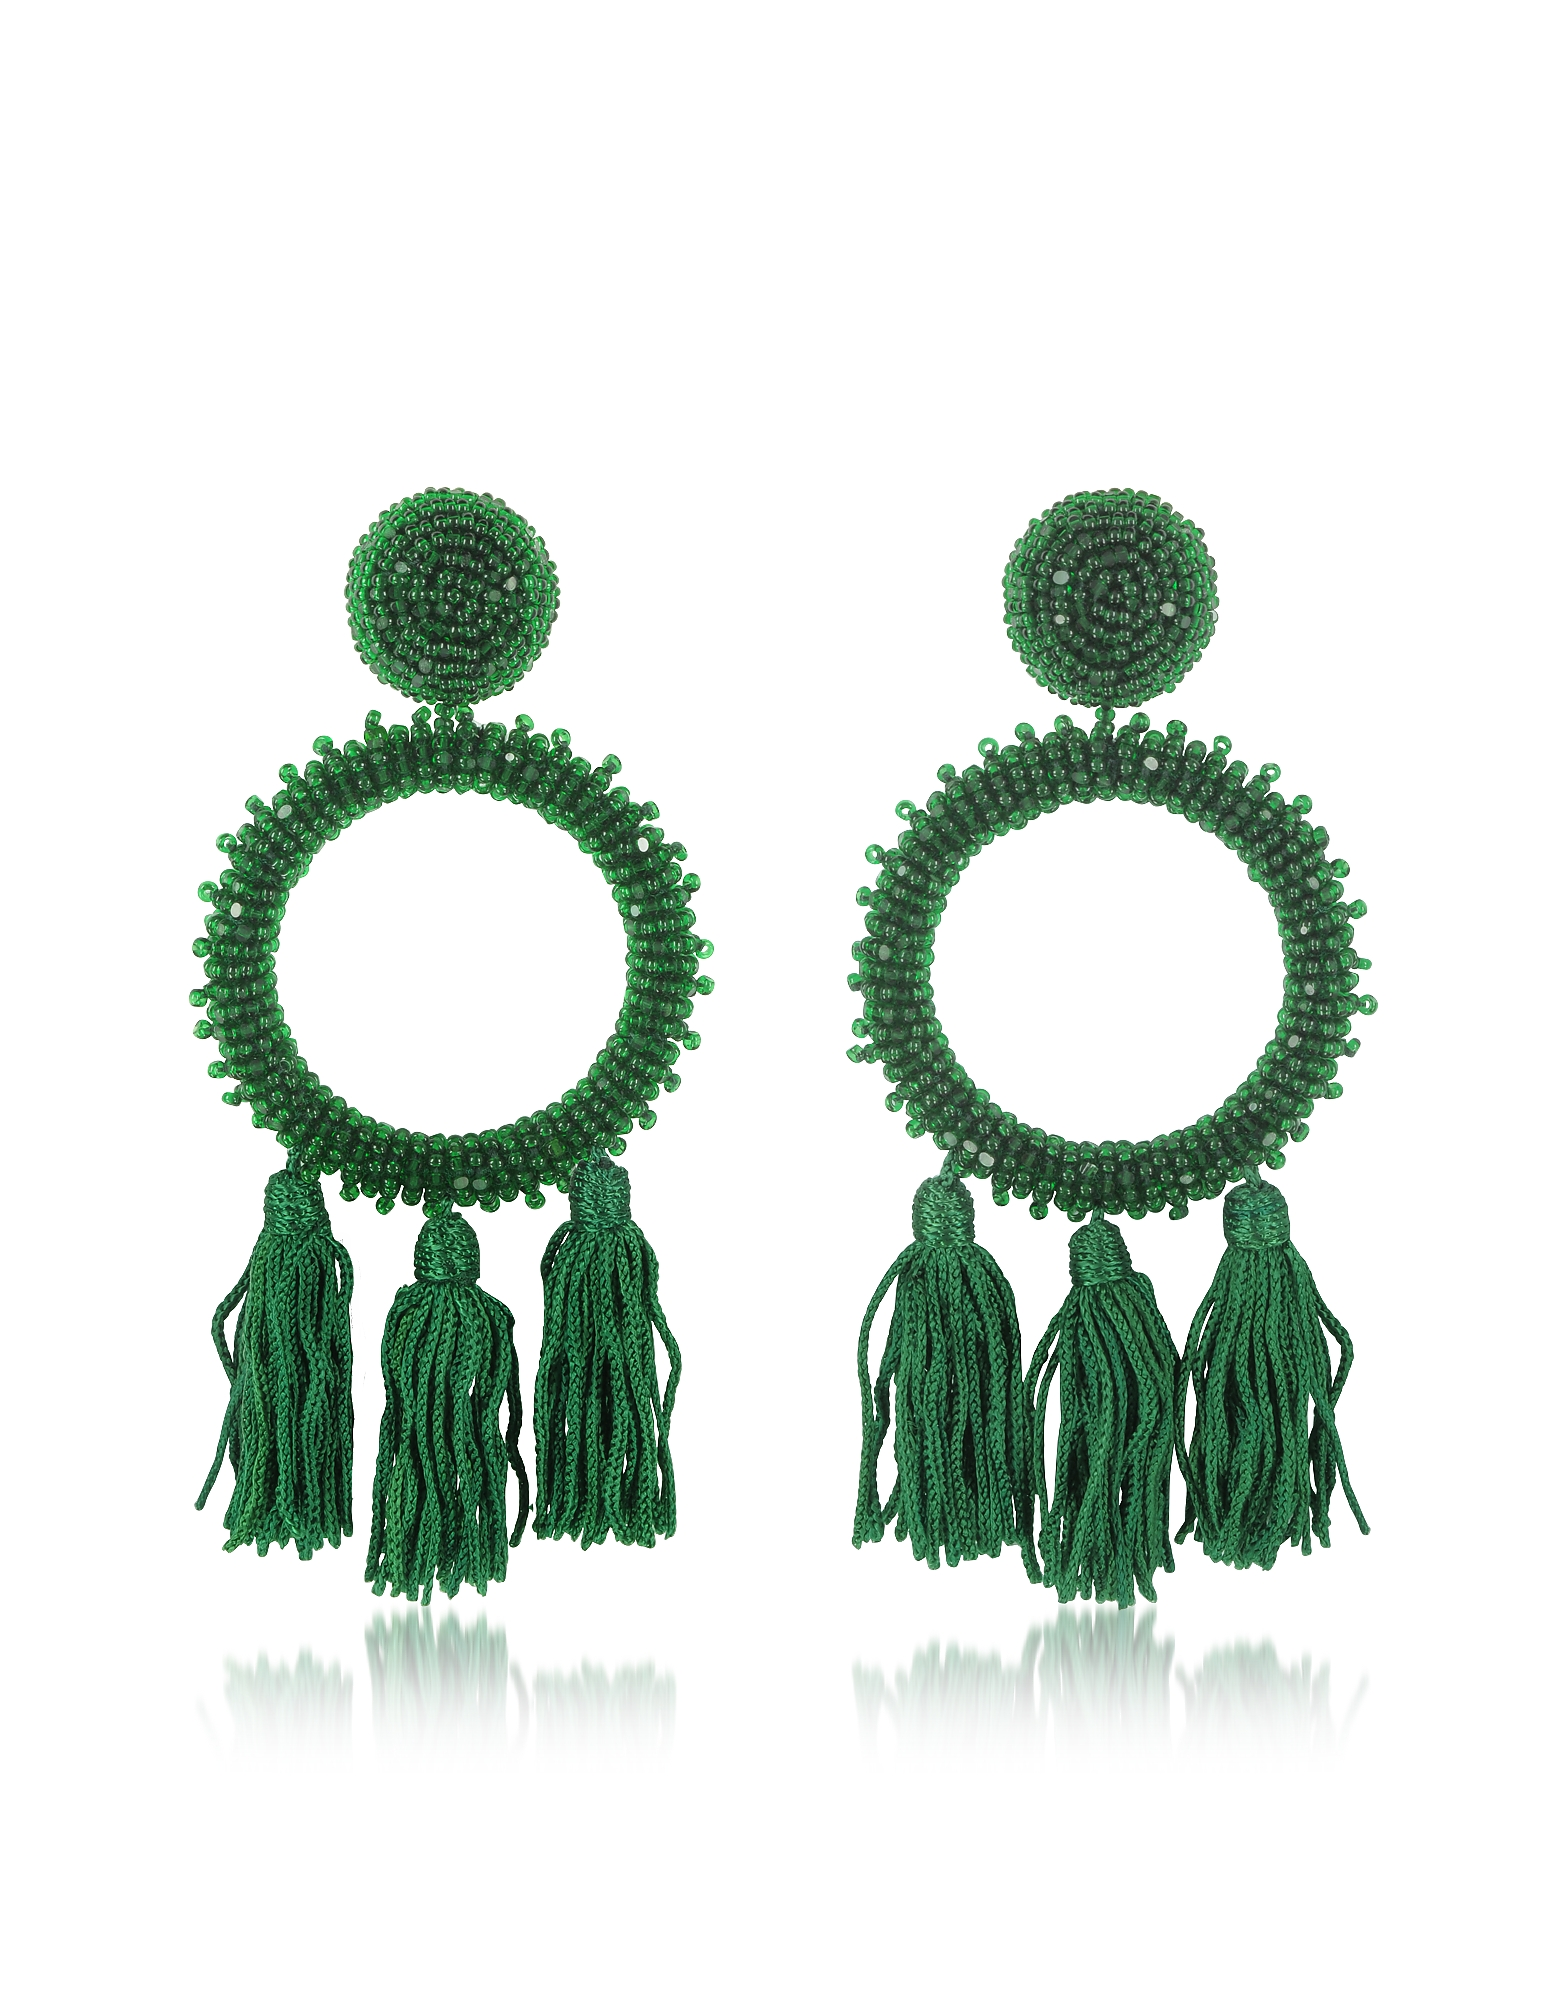 Oscar de la Renta Earrings, Large Beaded Circle With Tassel Earrings